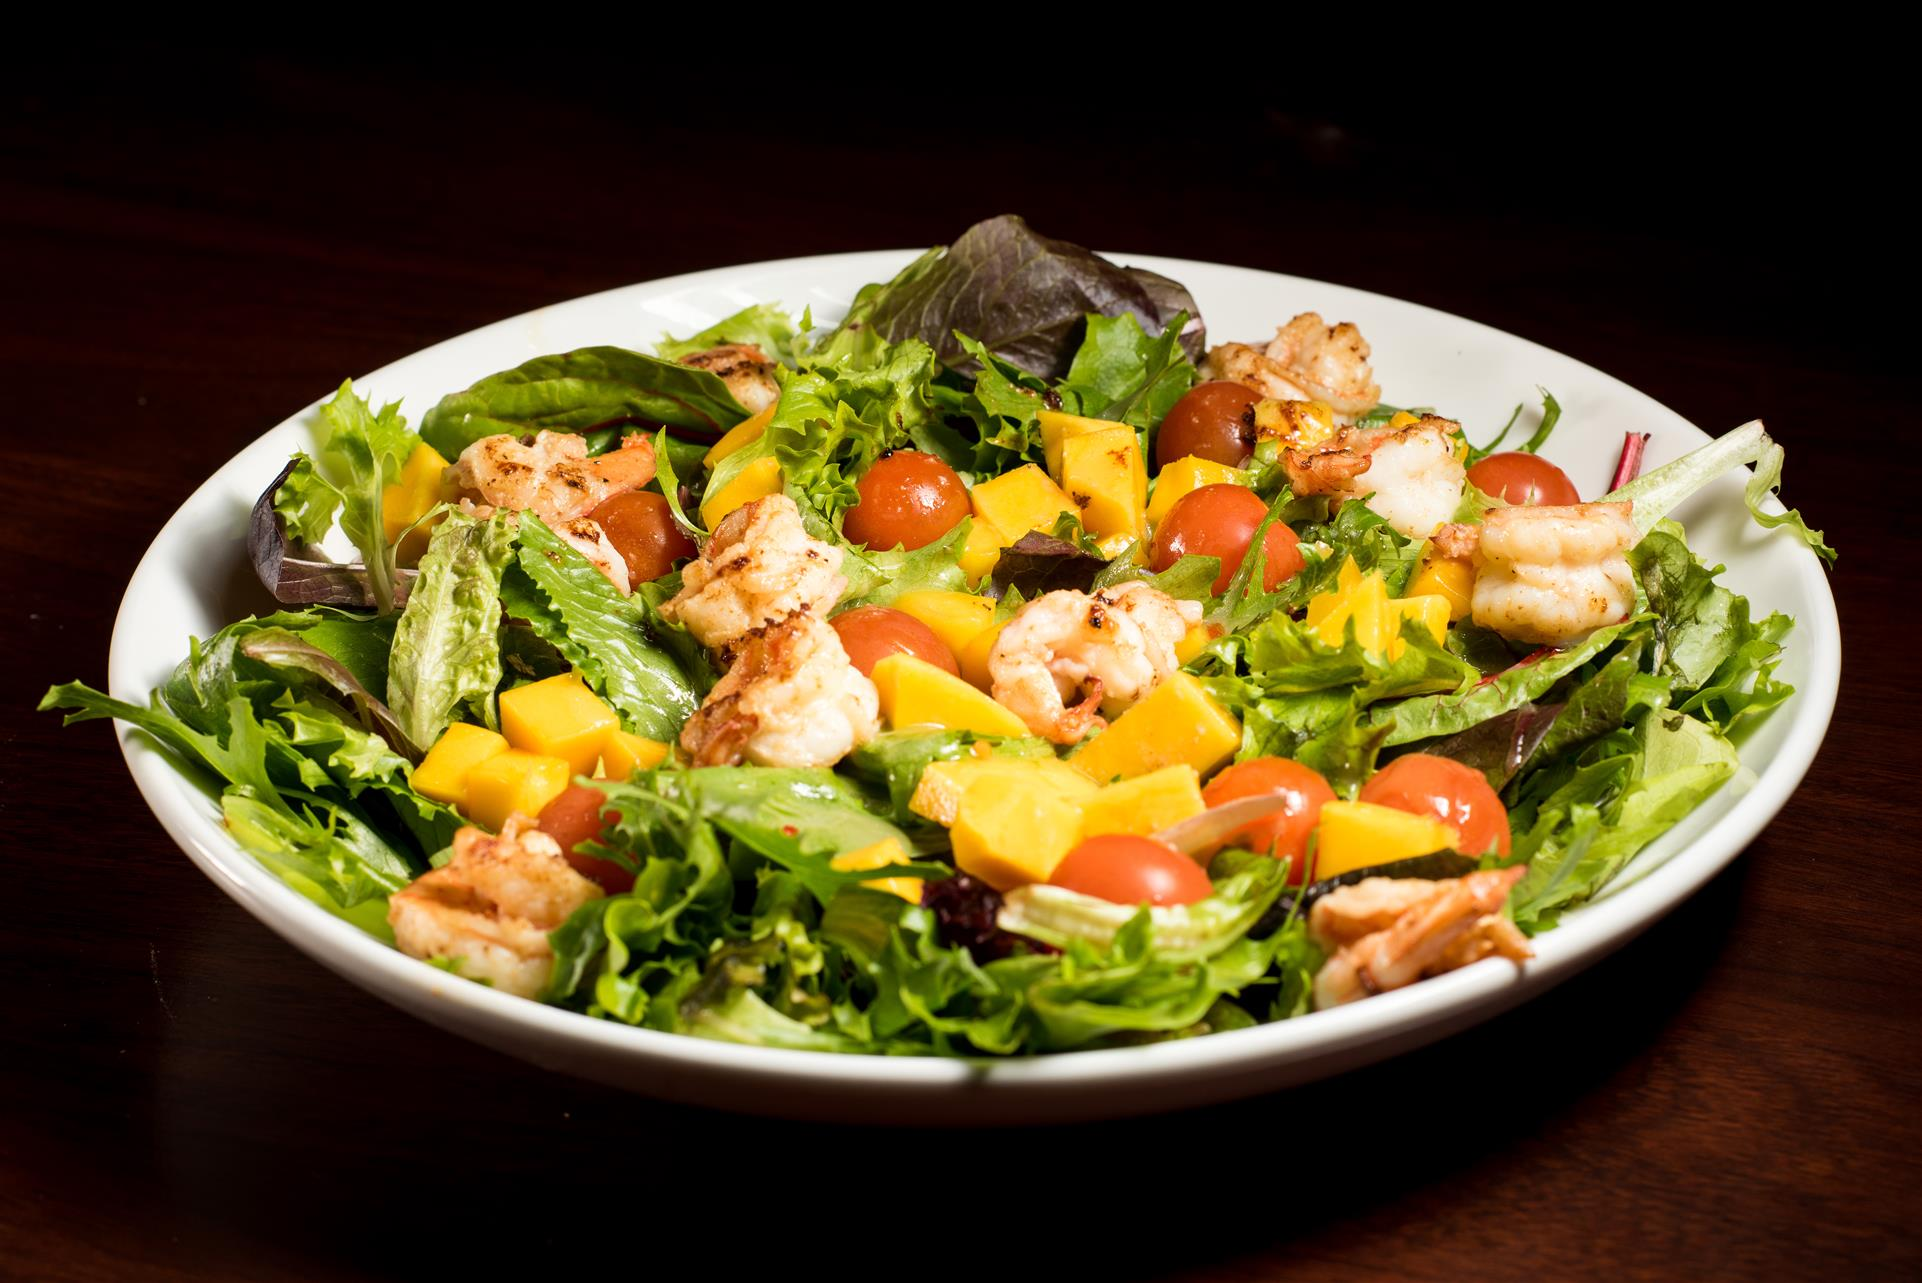 Shrimp Salad: Grilled shrimp with spring lettuce mix, mango vinaigrette, tomatoes and fresh mango cubes.